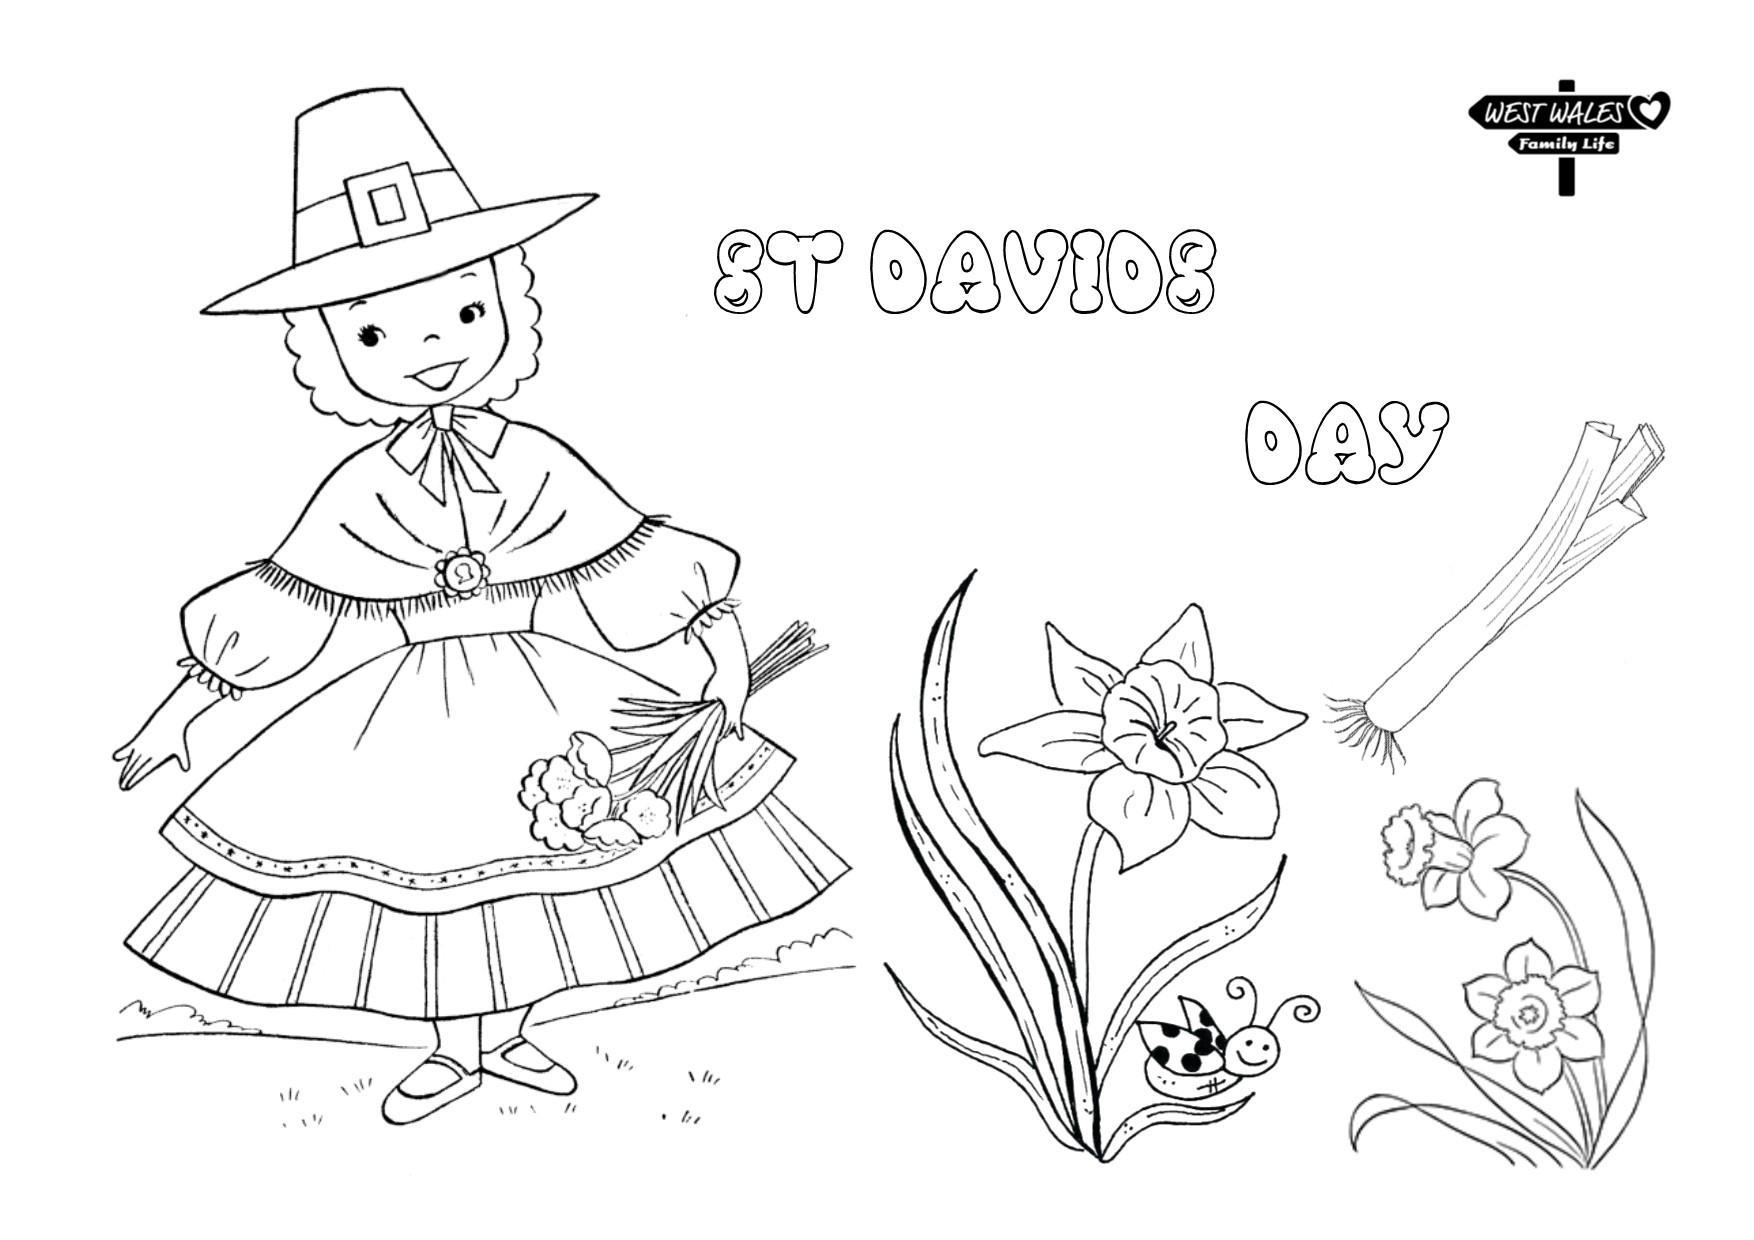 West Wales Family Life Printable St Davids Day Colouring Sheets for the Kids Page 3